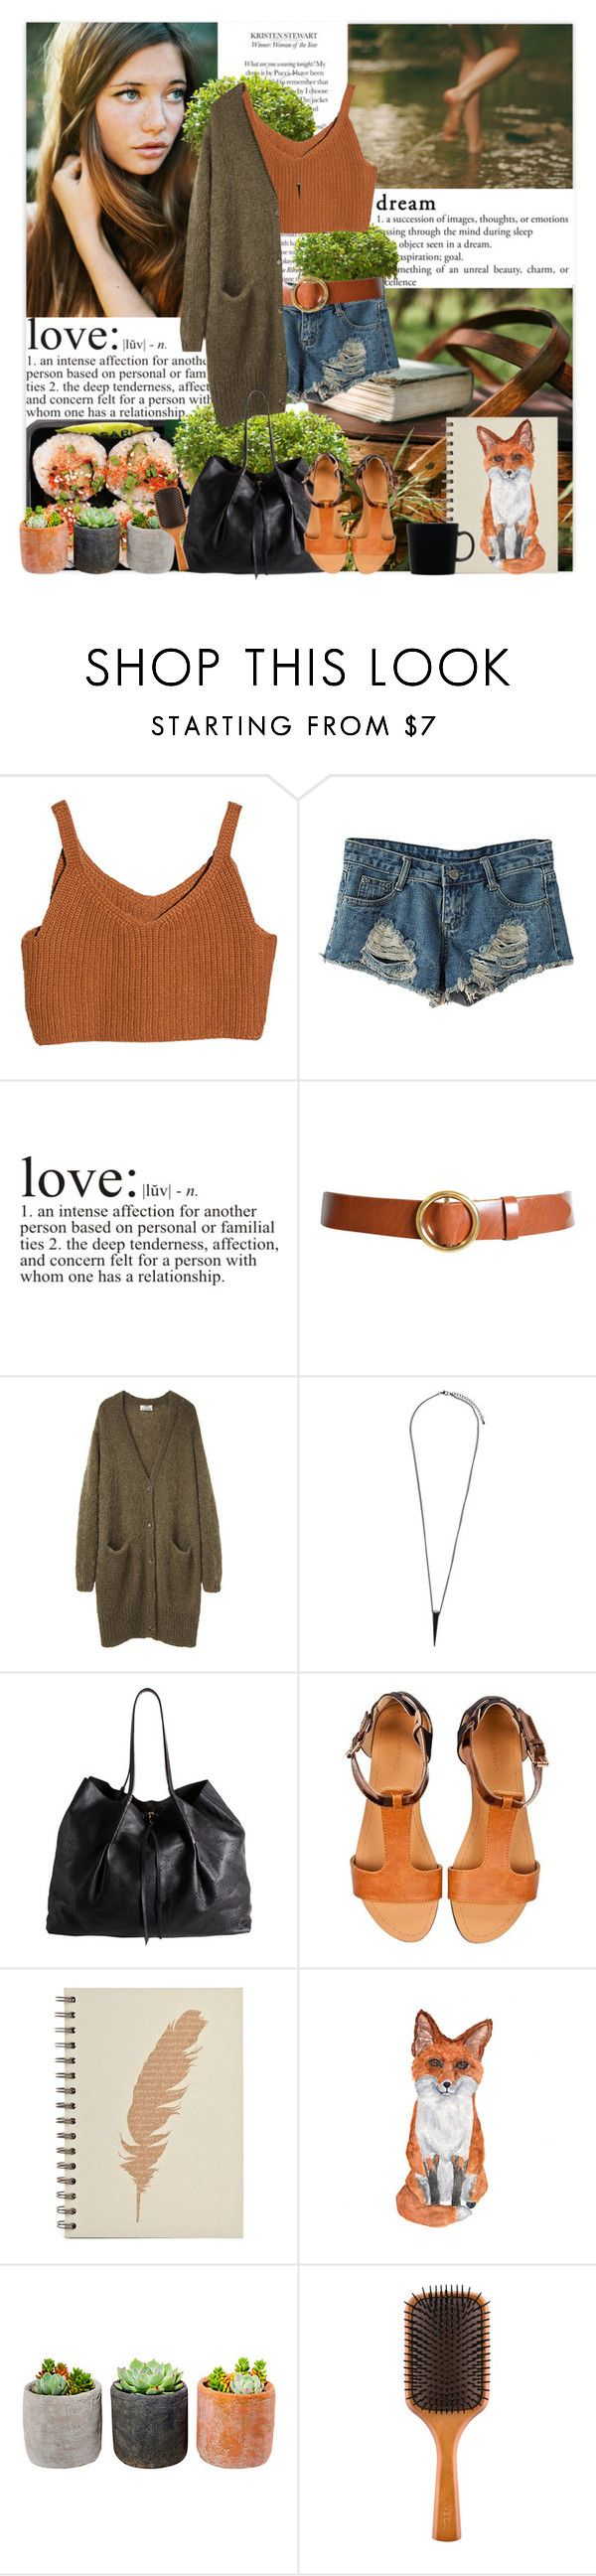 """M comme Mode de vie !!! 17"" by vicky-soleil ❤ liked on Polyvore featuring Frame Denim, Acne Studios, Pieces, Nina Ricci, Shop Succulents, Aveda and iittala"